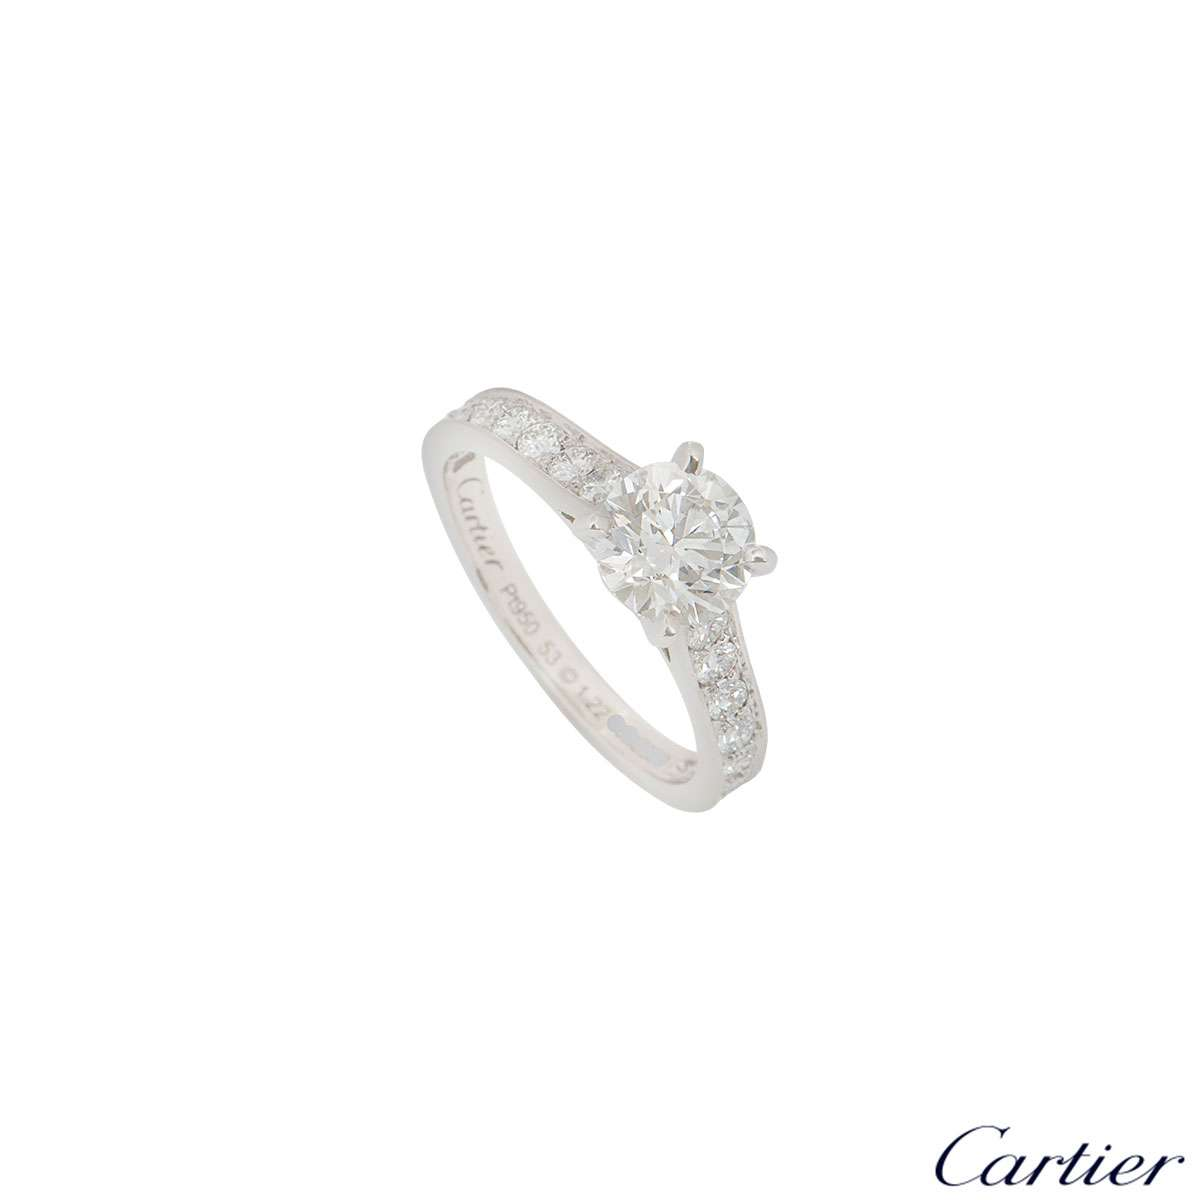 Cartier Platinum Diamond 1895 Solitaire Ring 1.22ct G/VVS1 XXX